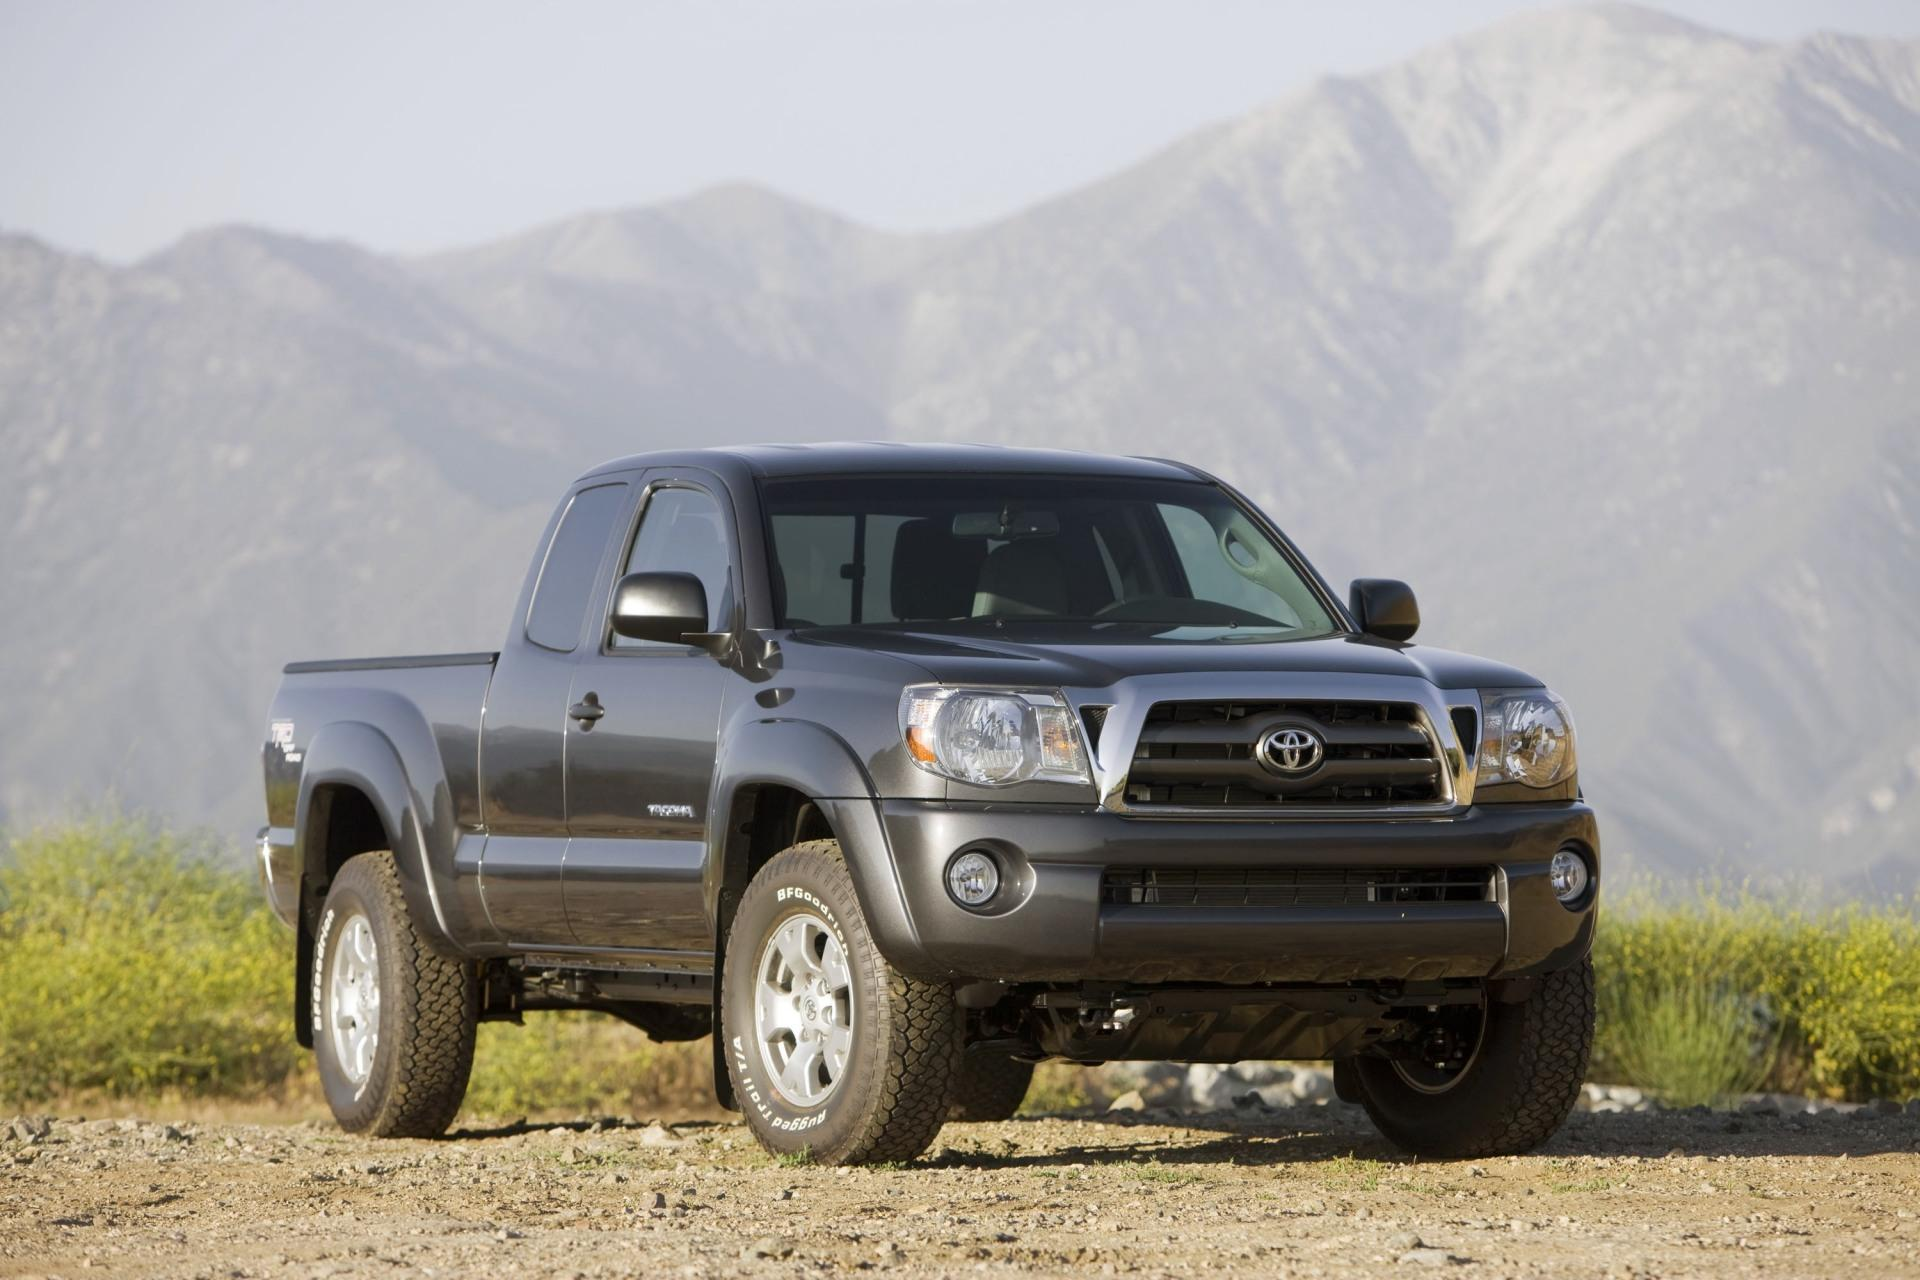 Toyota Tacoma Truck HD Desktop Wallpaper 3748 HD Wallpaper 3D 1920x1280